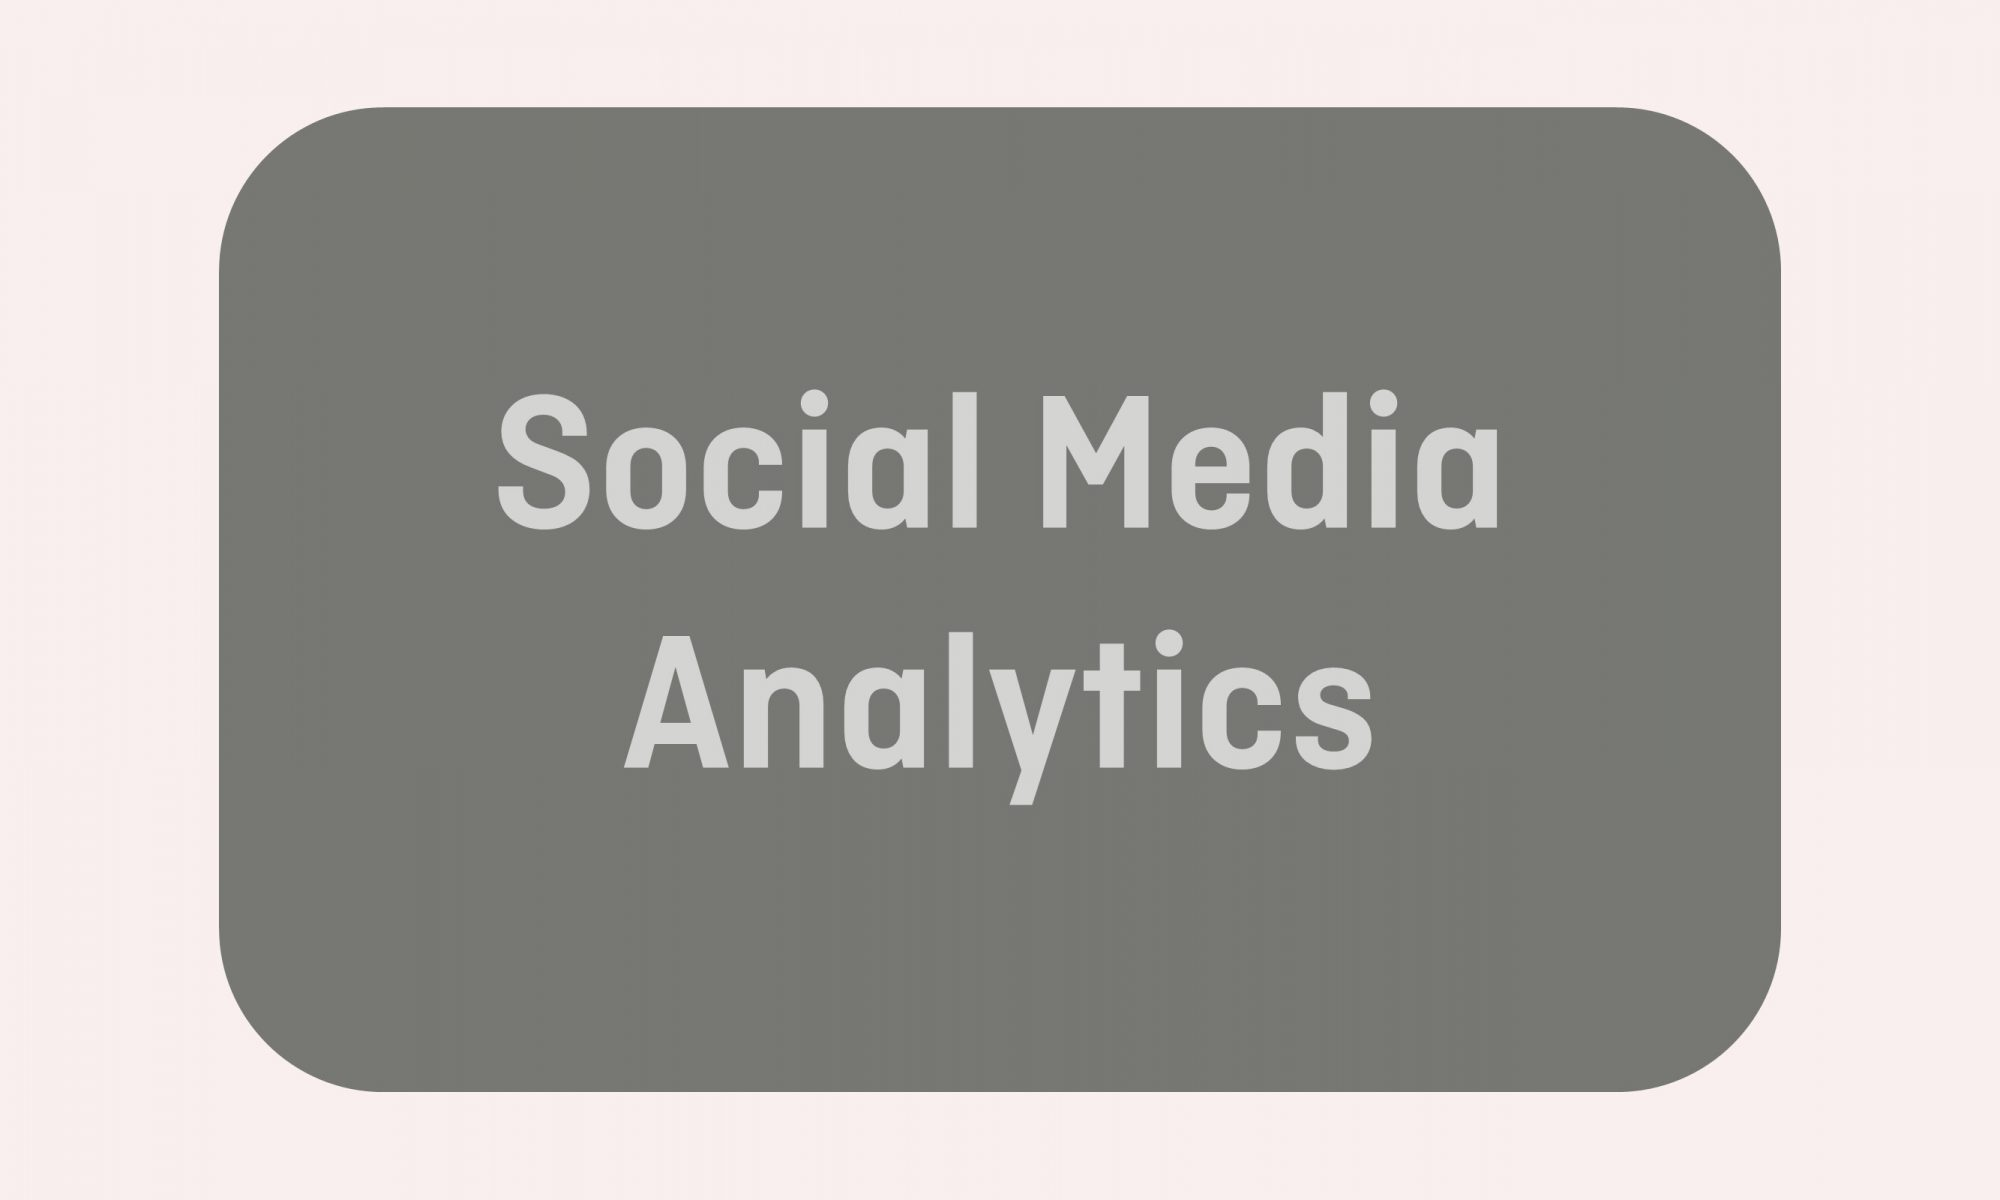 GRAUROSAROT_PR_Agentur_Architektur_Industrie_Social_Media_Analytics